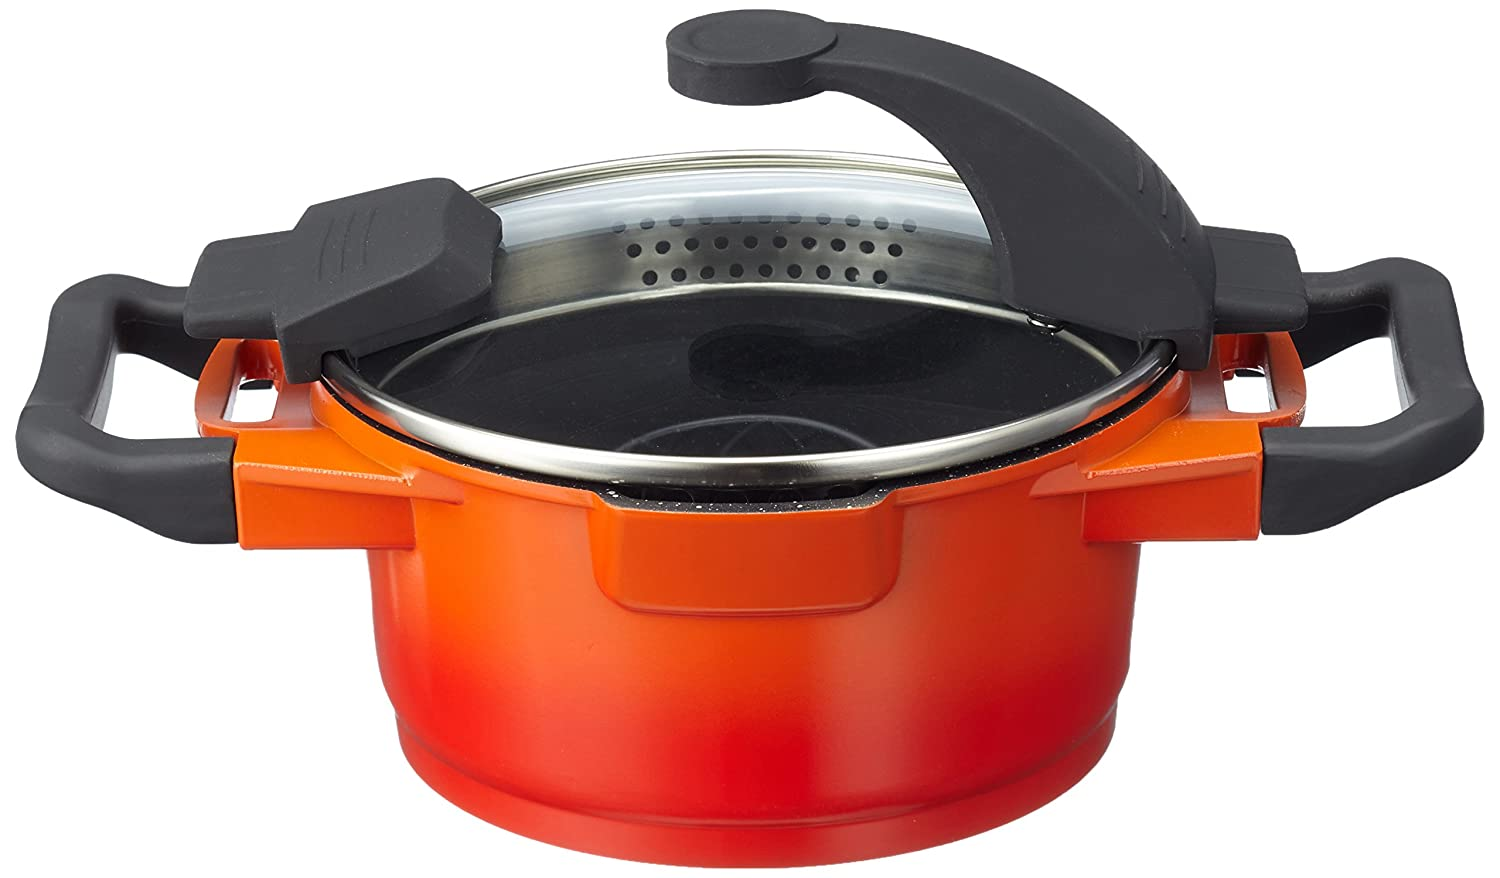 BergHOFF Virgo Cast Aluminium Non-stick Covered Casserole With Lid, Orange/Red, 16 Centimeter 2304900